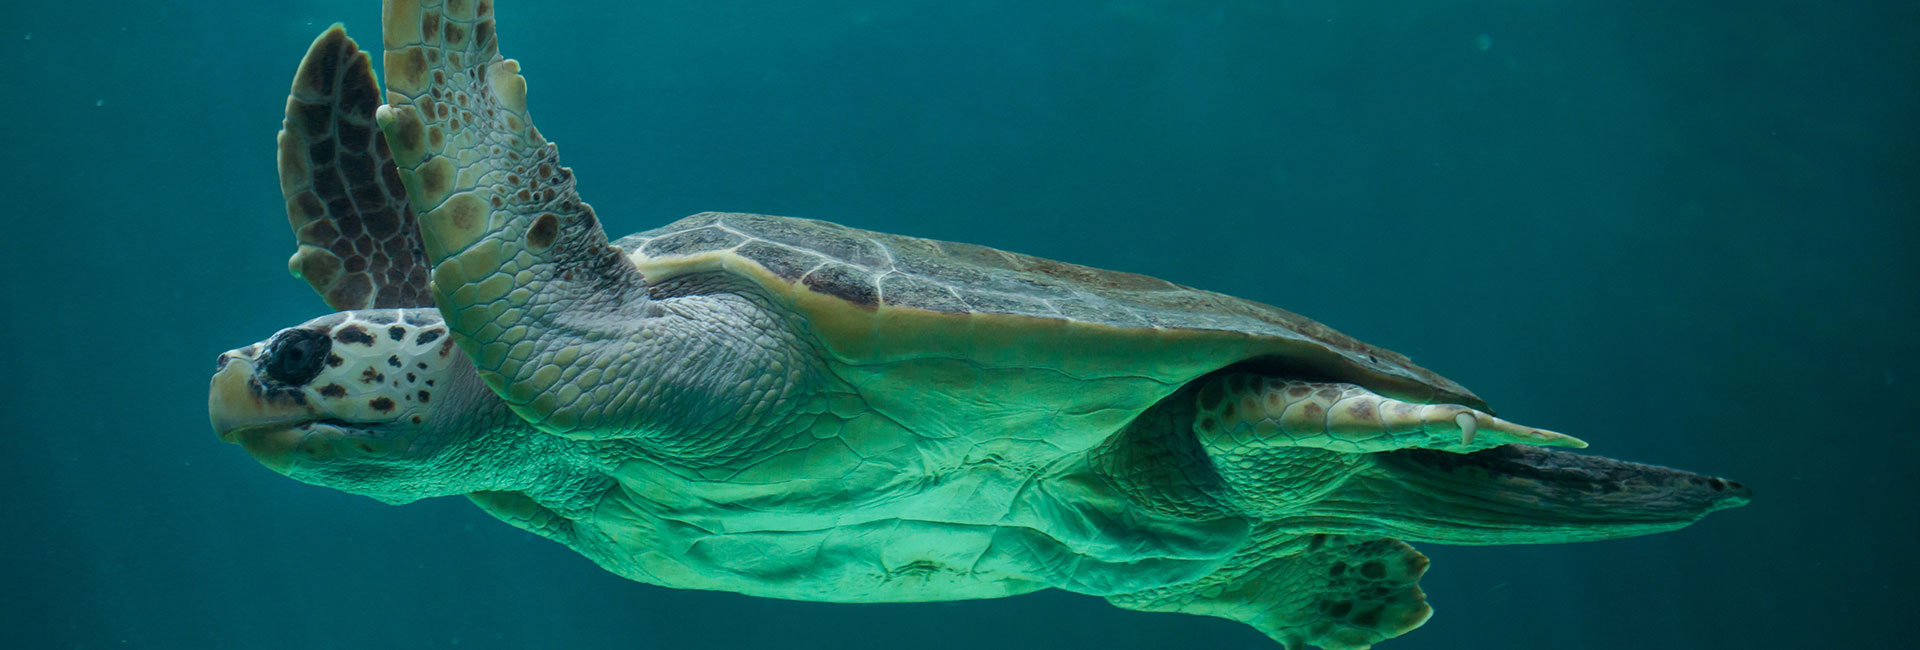 Meet a Caretta-Caretta